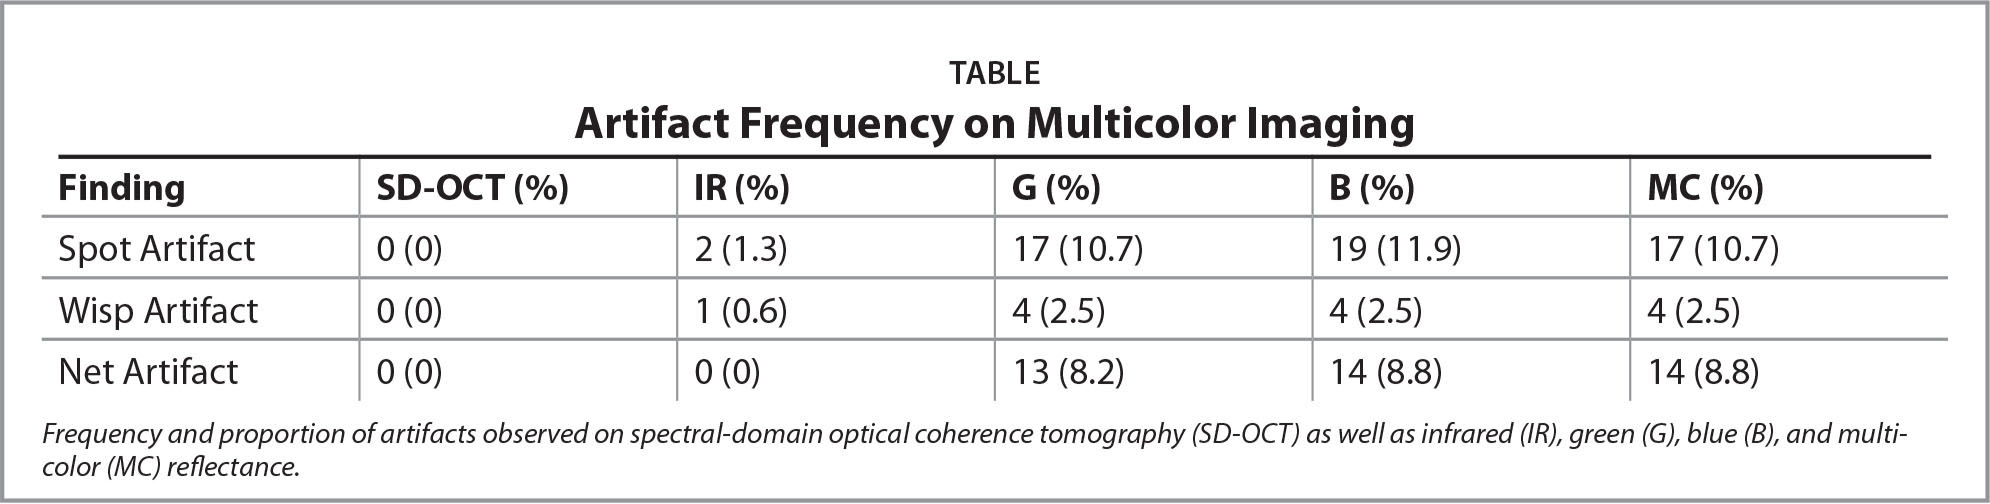 Artifact Frequency on Multicolor Imaging